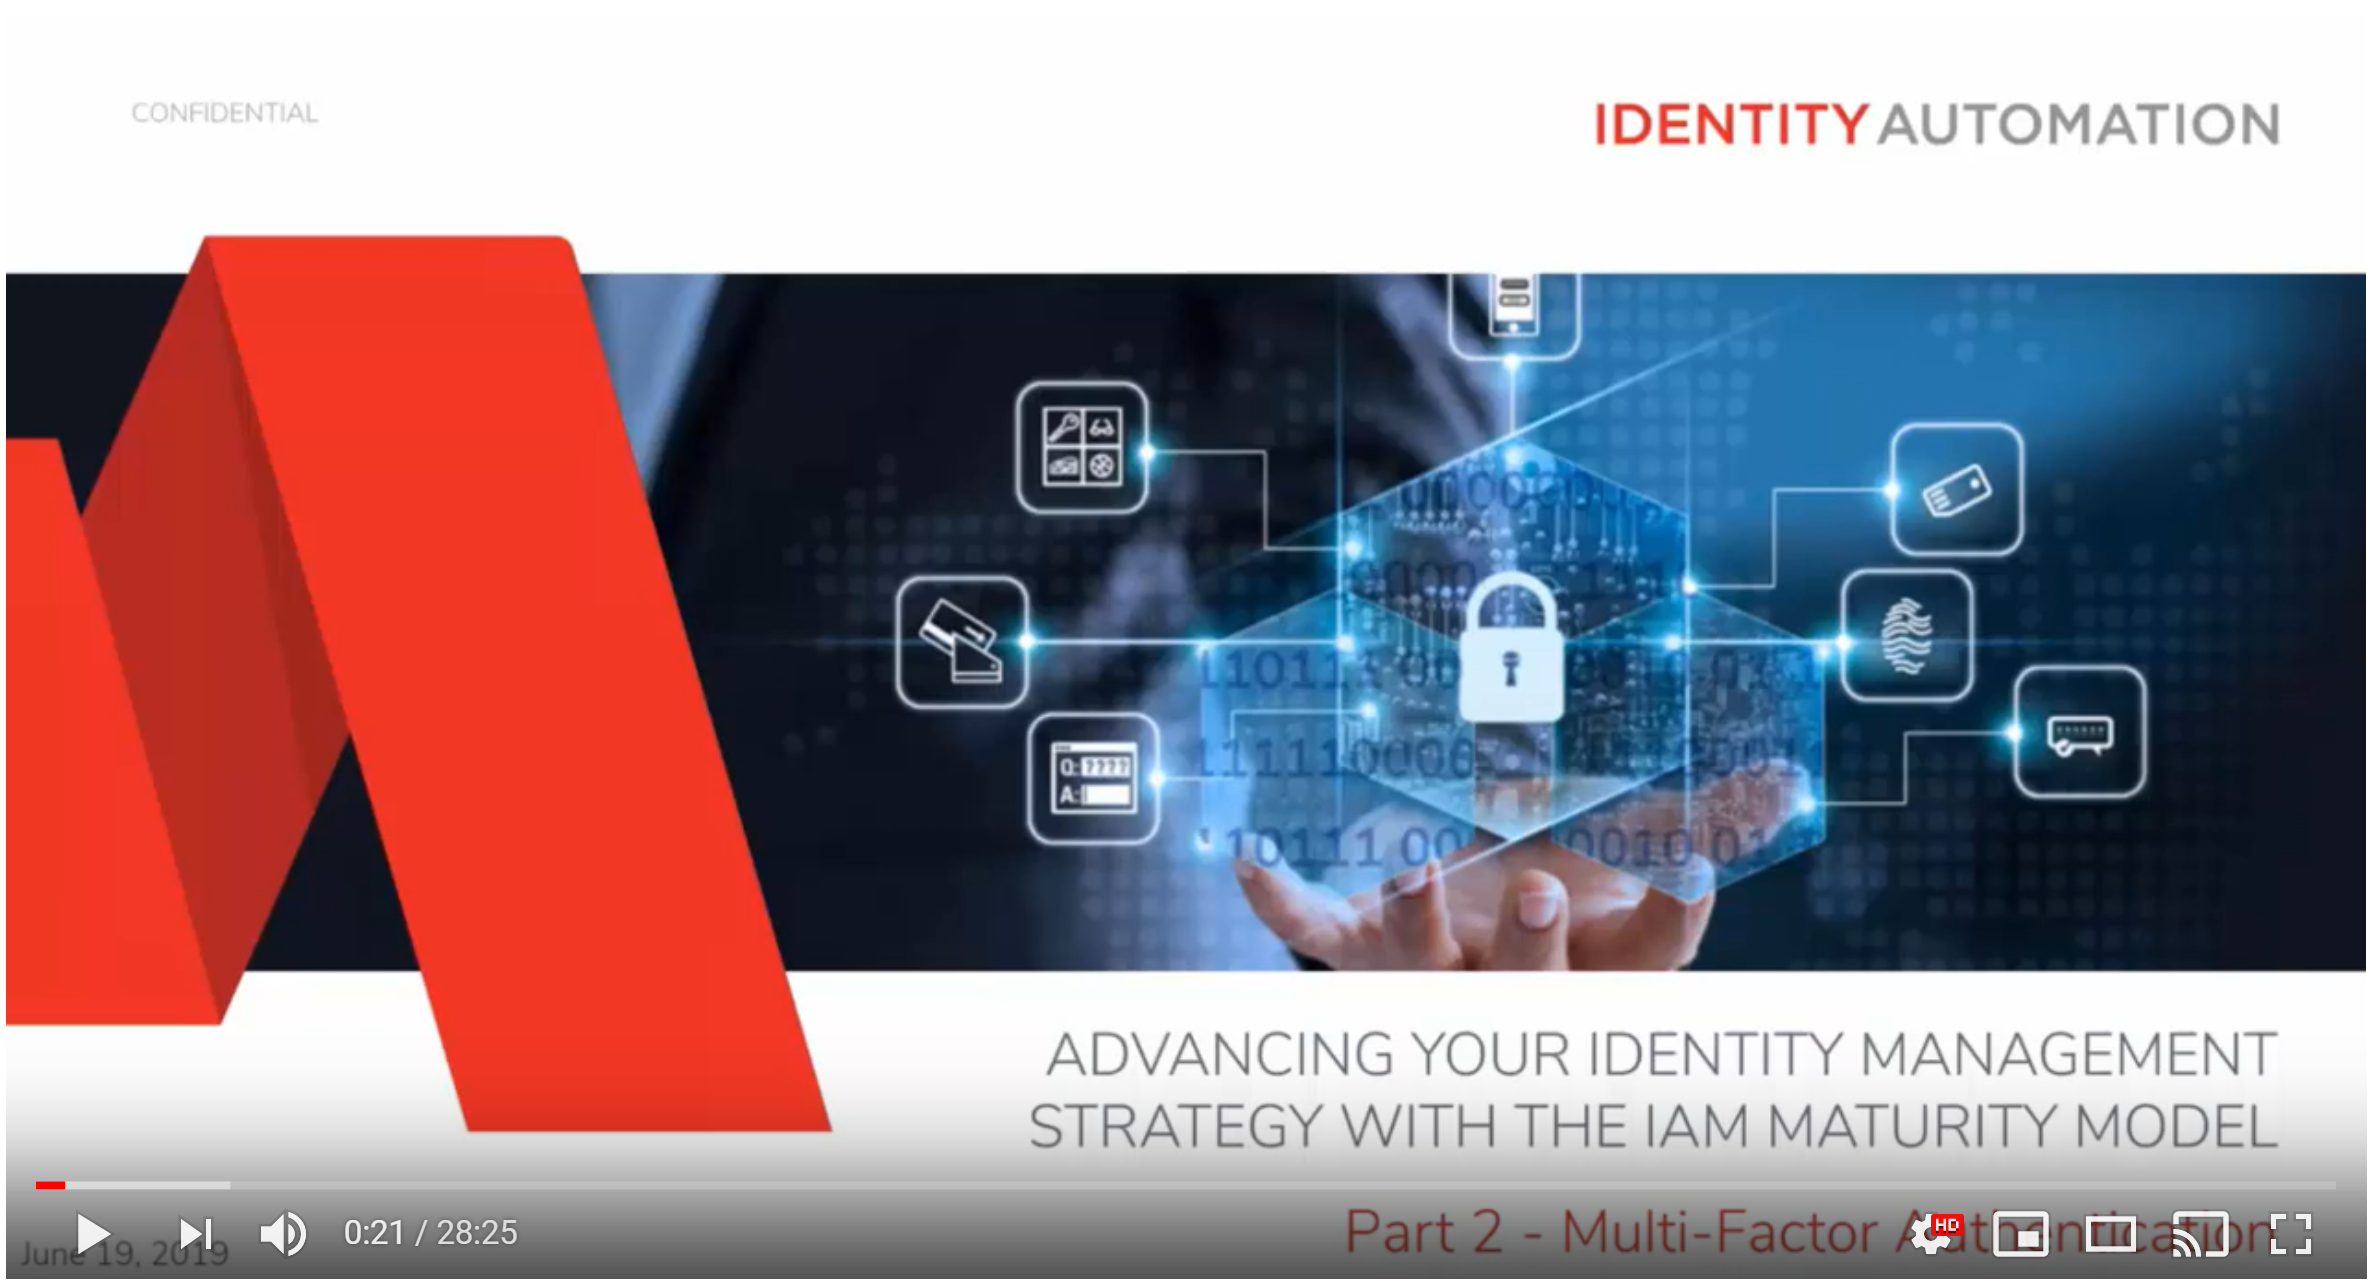 Advancing Your Identity Management Strategy with the IAM Maturity Model, Part 2 - MFA